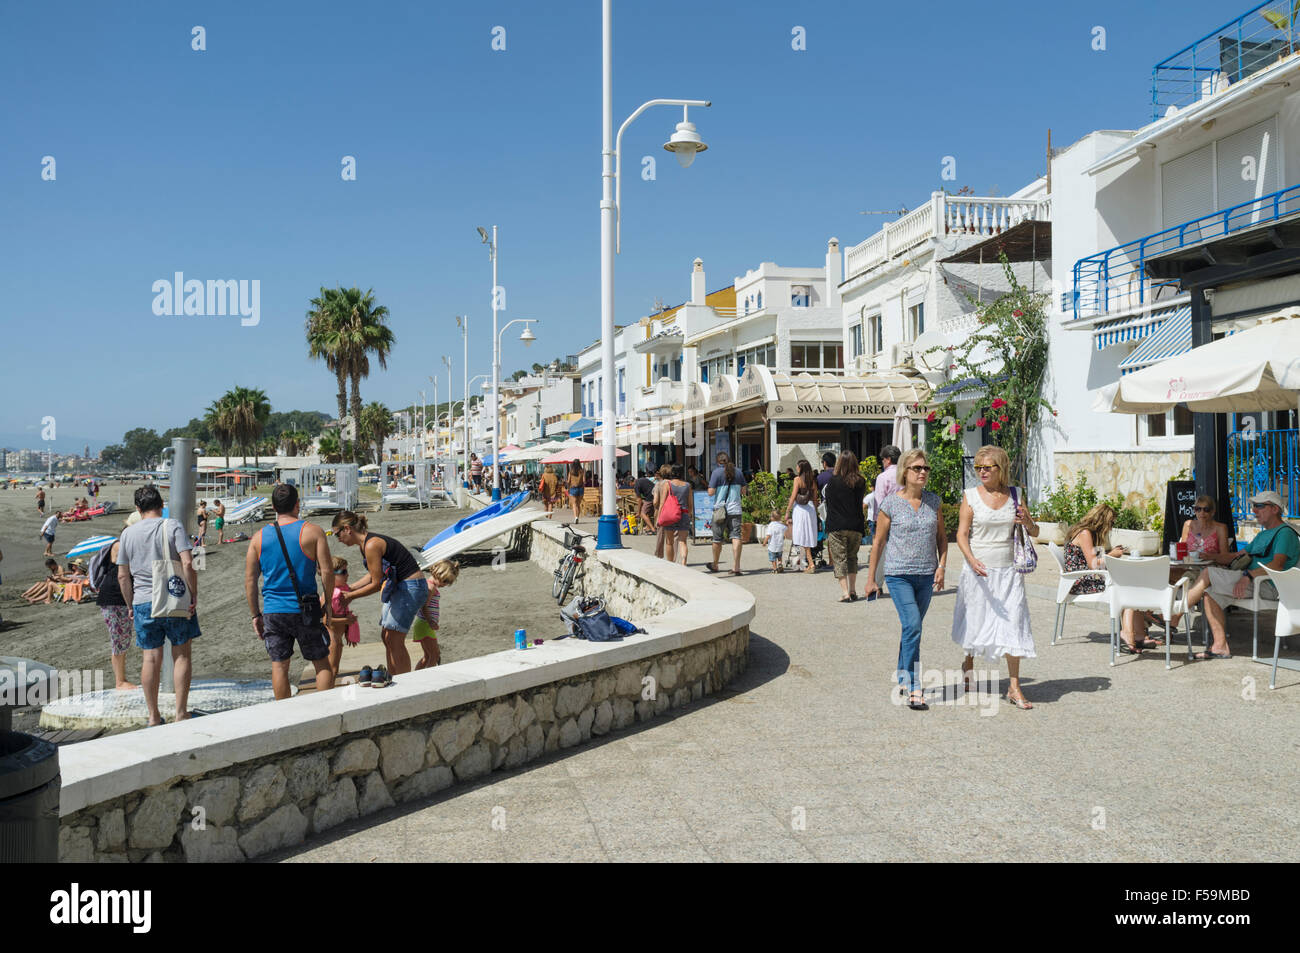 People at the promenade in Pedregalejo, Malaga, Andalusia, Spain. - Stock Image